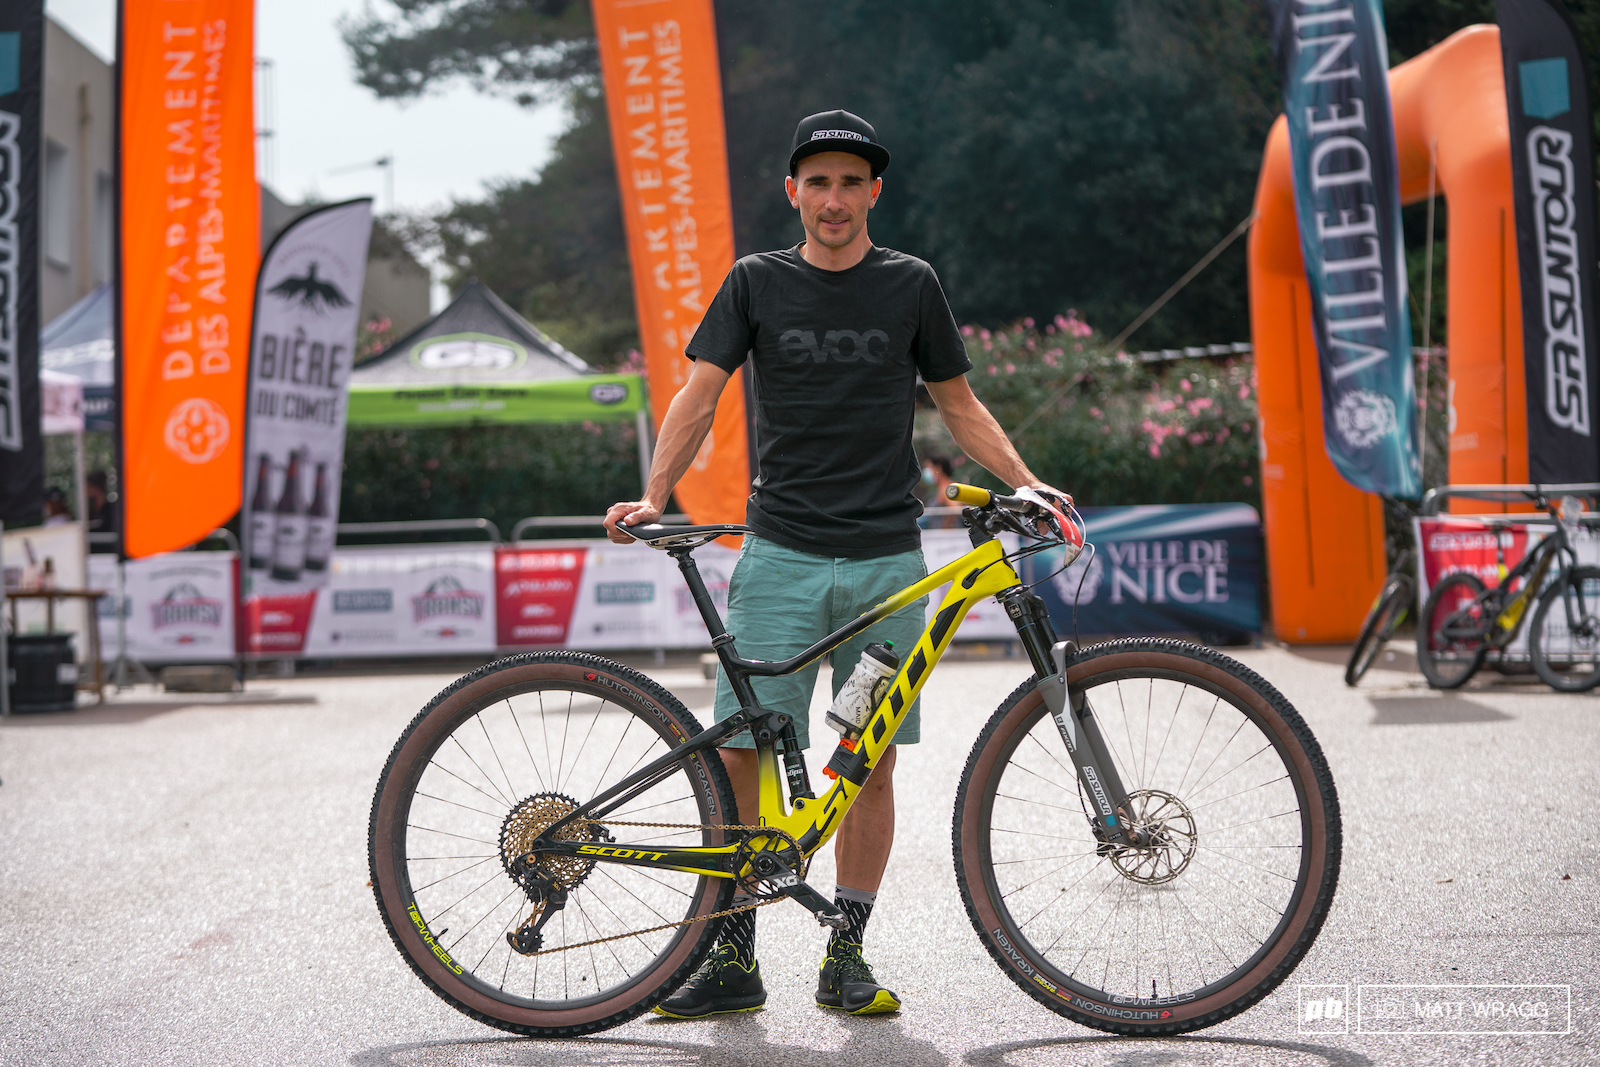 2018 French Marthon champion Emeric Turcat and the Scott Spark RC that took him to his second consecutive victory - for this race he added a dropper post and a 120mm fork compared to his usual racing setup.